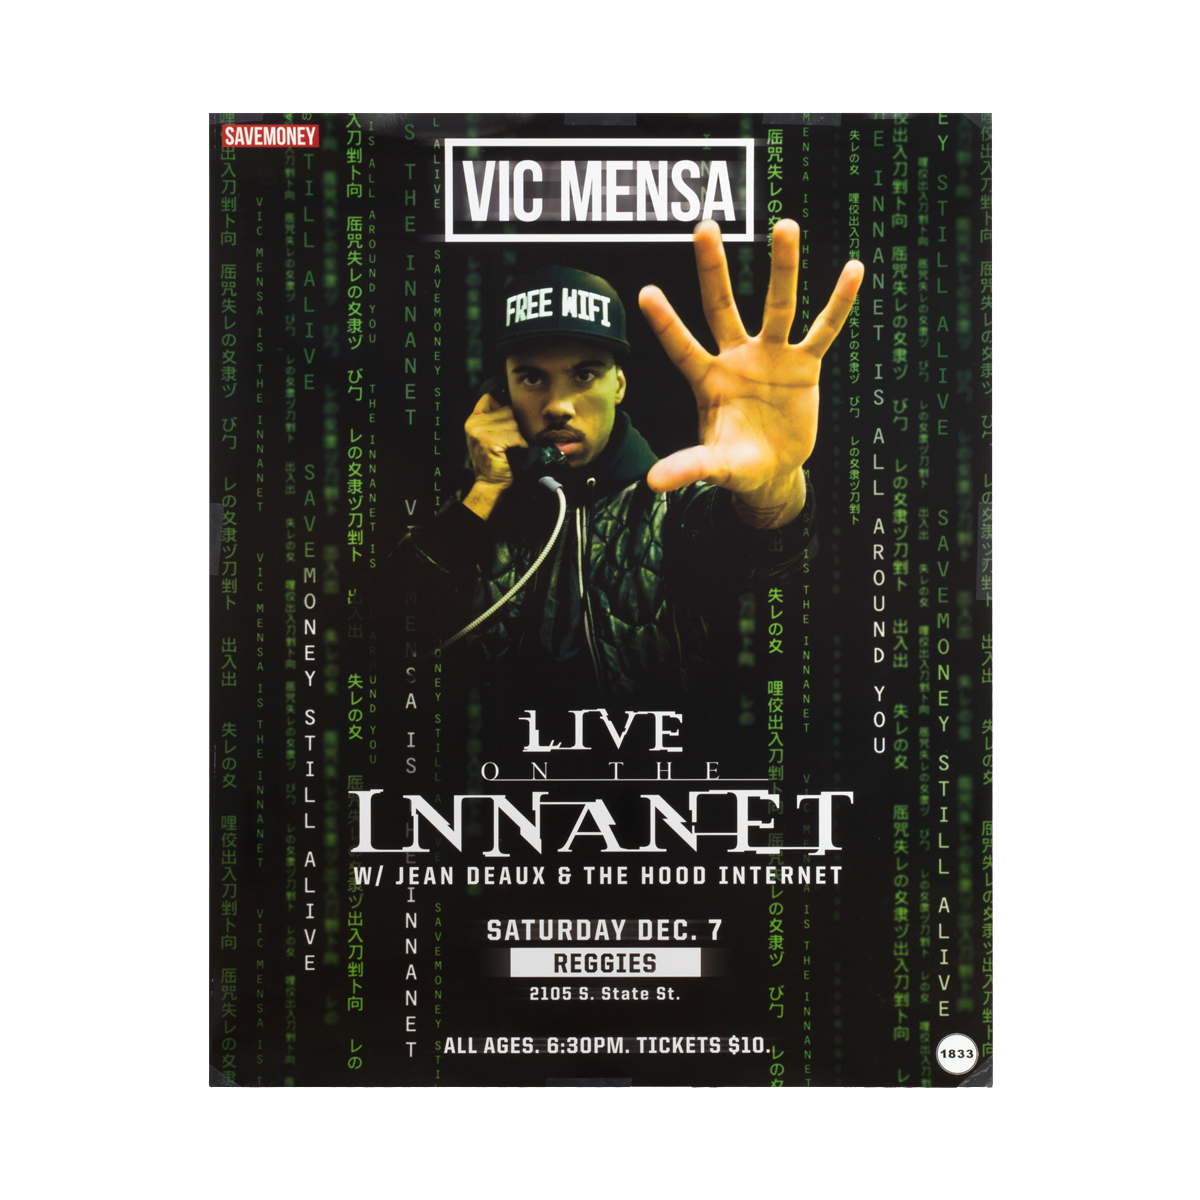 Vic Mensa Live on the Internet Poster